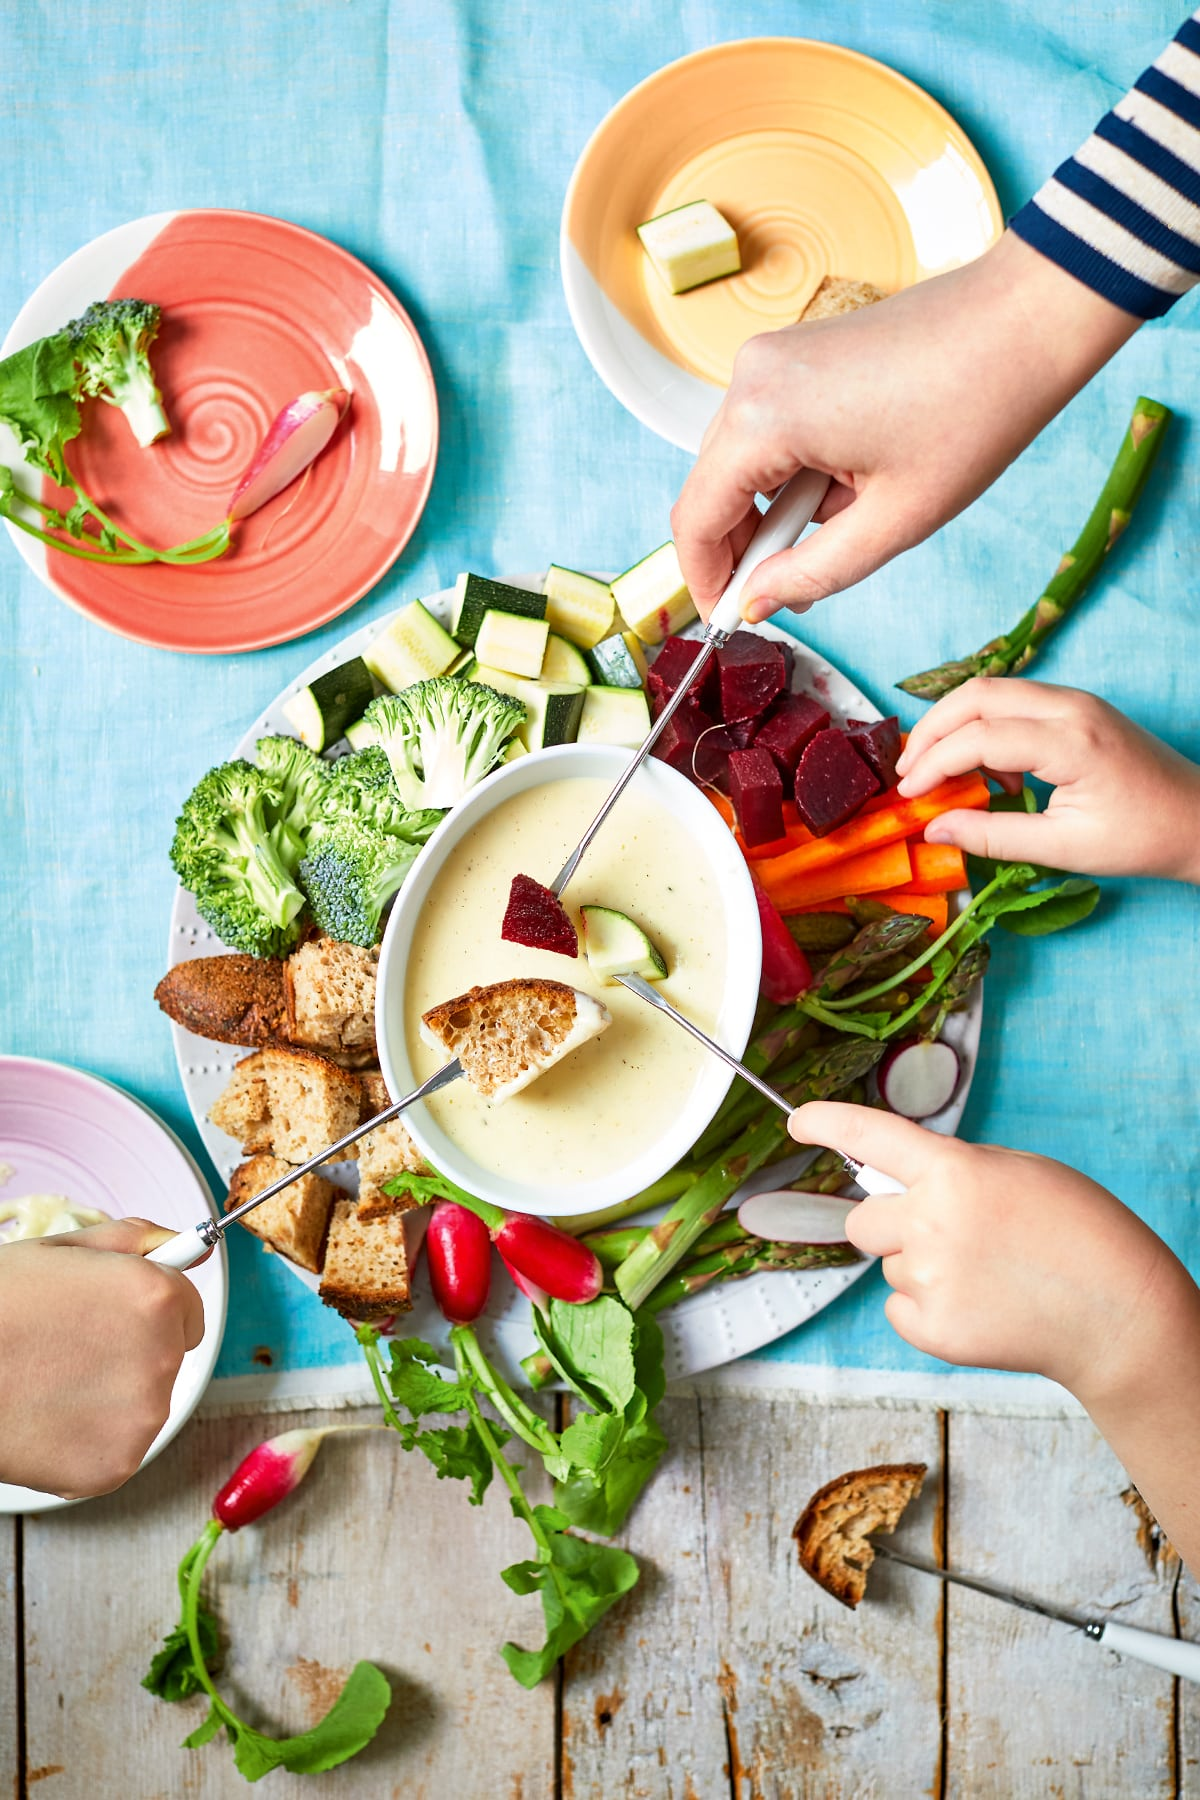 An overhead view of a vegetable fondue platter. A family of hands reaches in with fondue forks to dip bread, beetroot, courgette and more into the cheese sauce.